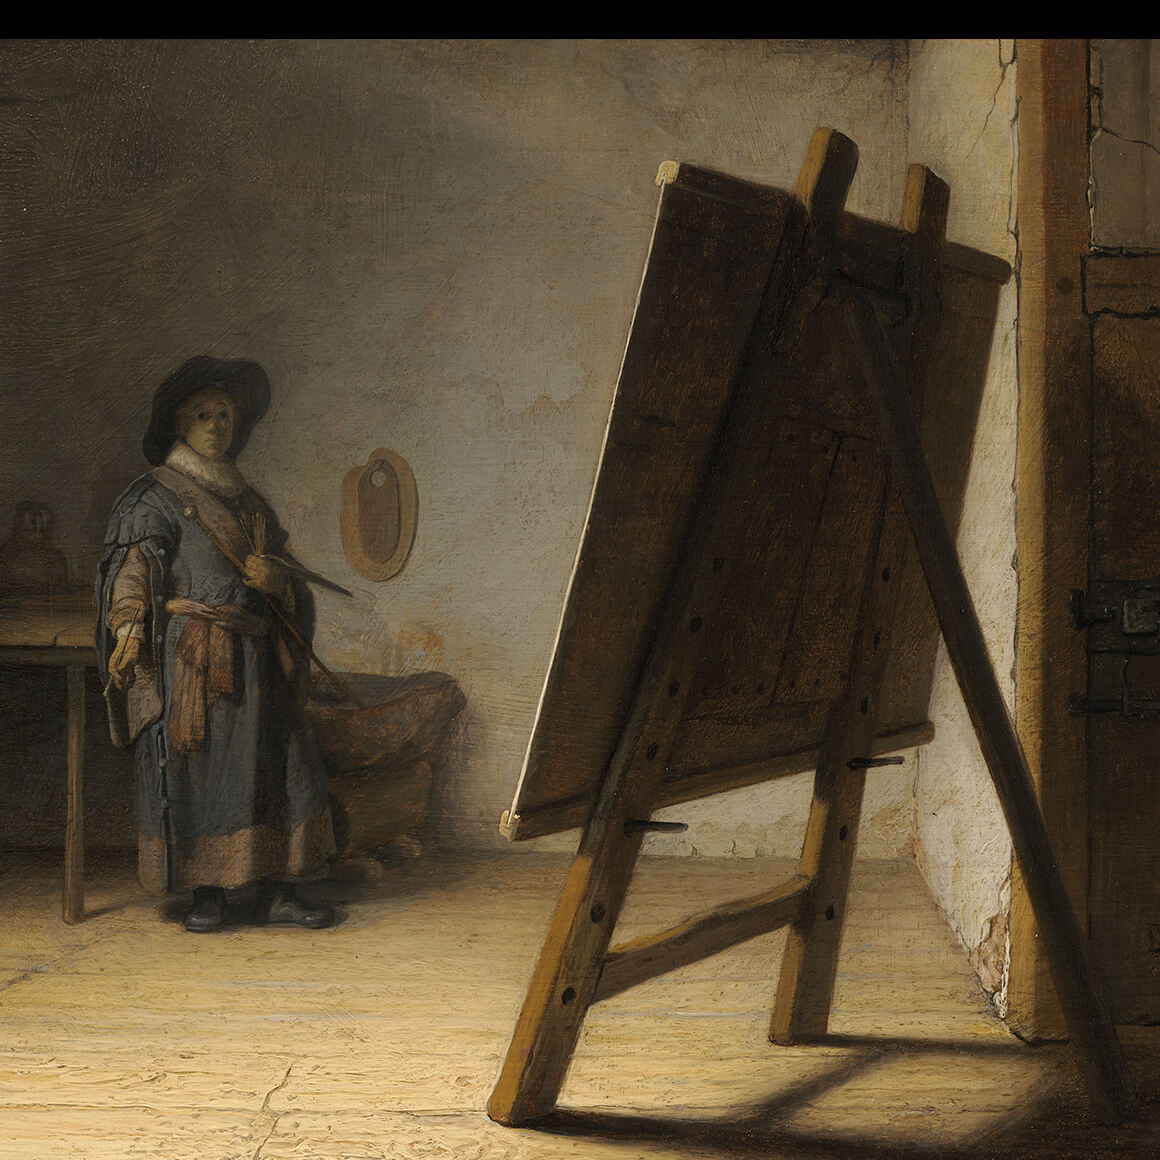 Detail of Rembrandt's painting, Artist in His Studio